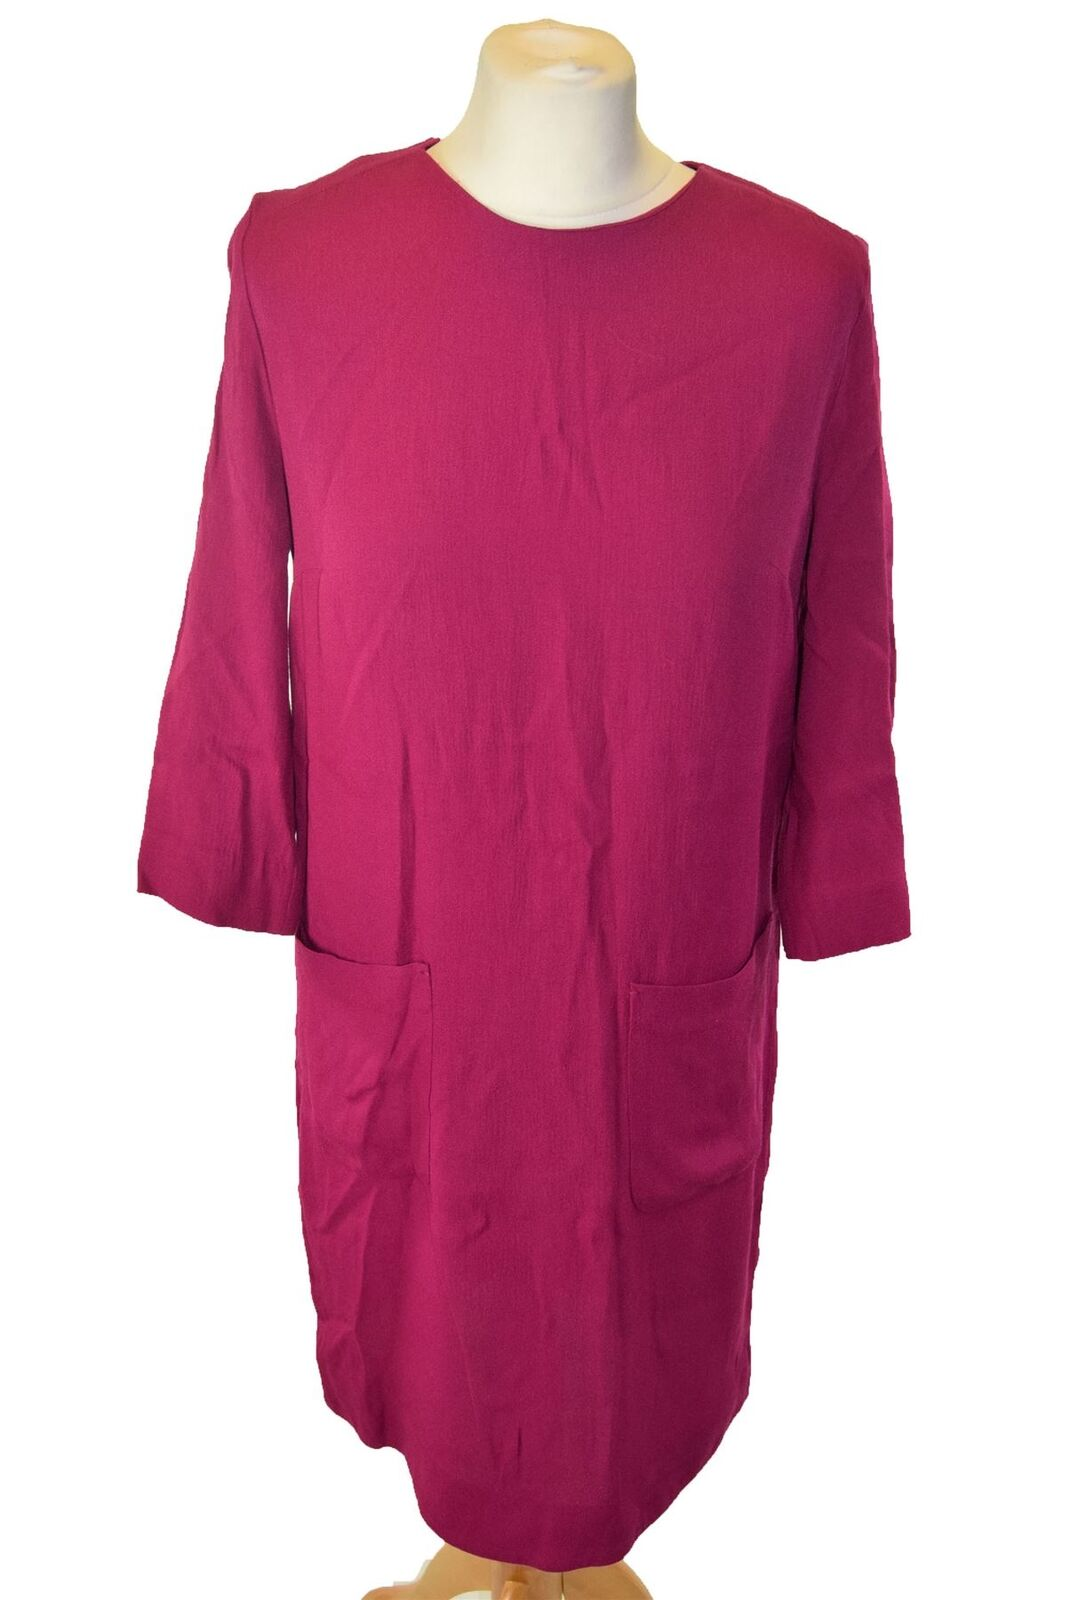 BY MARLENE BIRGER Pink Shift Dress, US 6